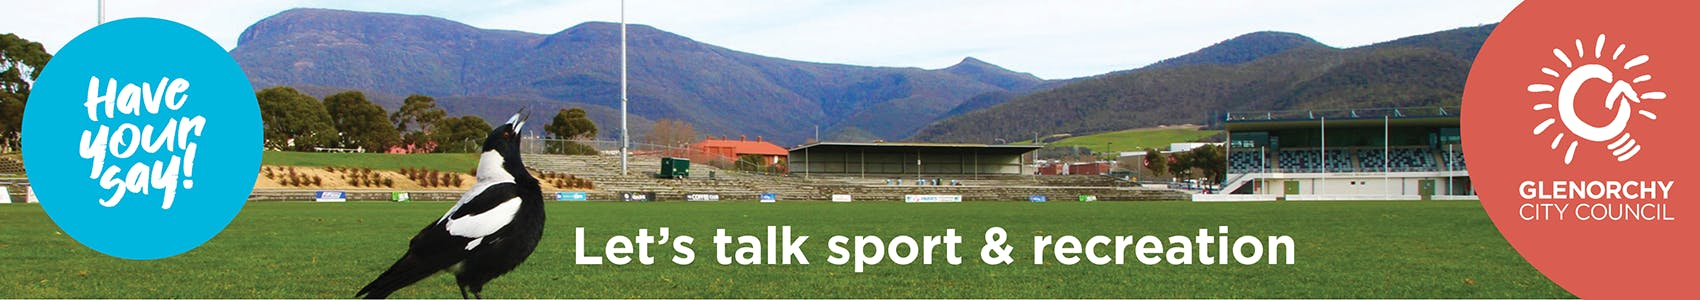 Let's talk sport and recreation banner with photo of KGV sport grounds with a magpie in the foreground and kunanyi/Mt Wellington in the background. With text Have your say, Let's talk sport and recreation and the Glenorchy City Council Logo.